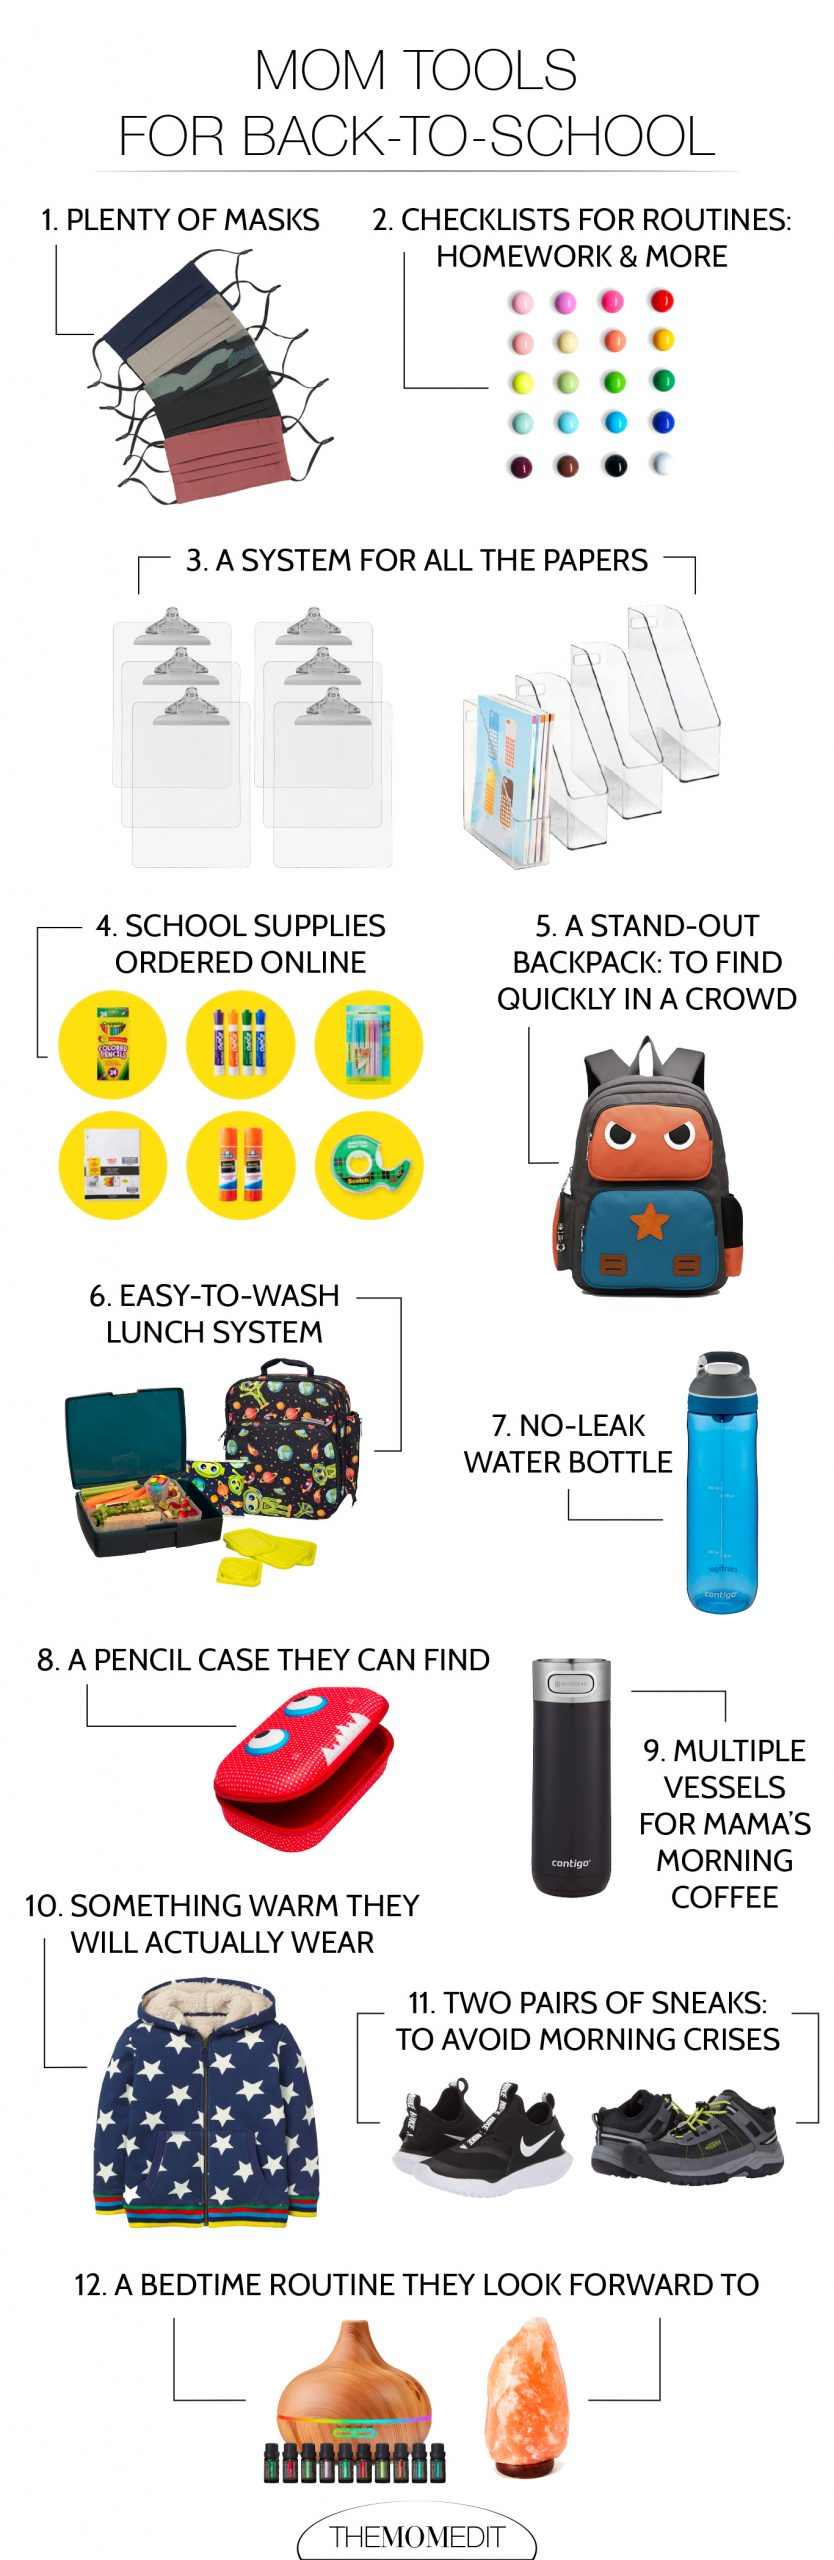 Back-to-school means shopping for school supplies, plus routines & home organization for keeping kids on schedule & ready for class. We're on it, Mama.